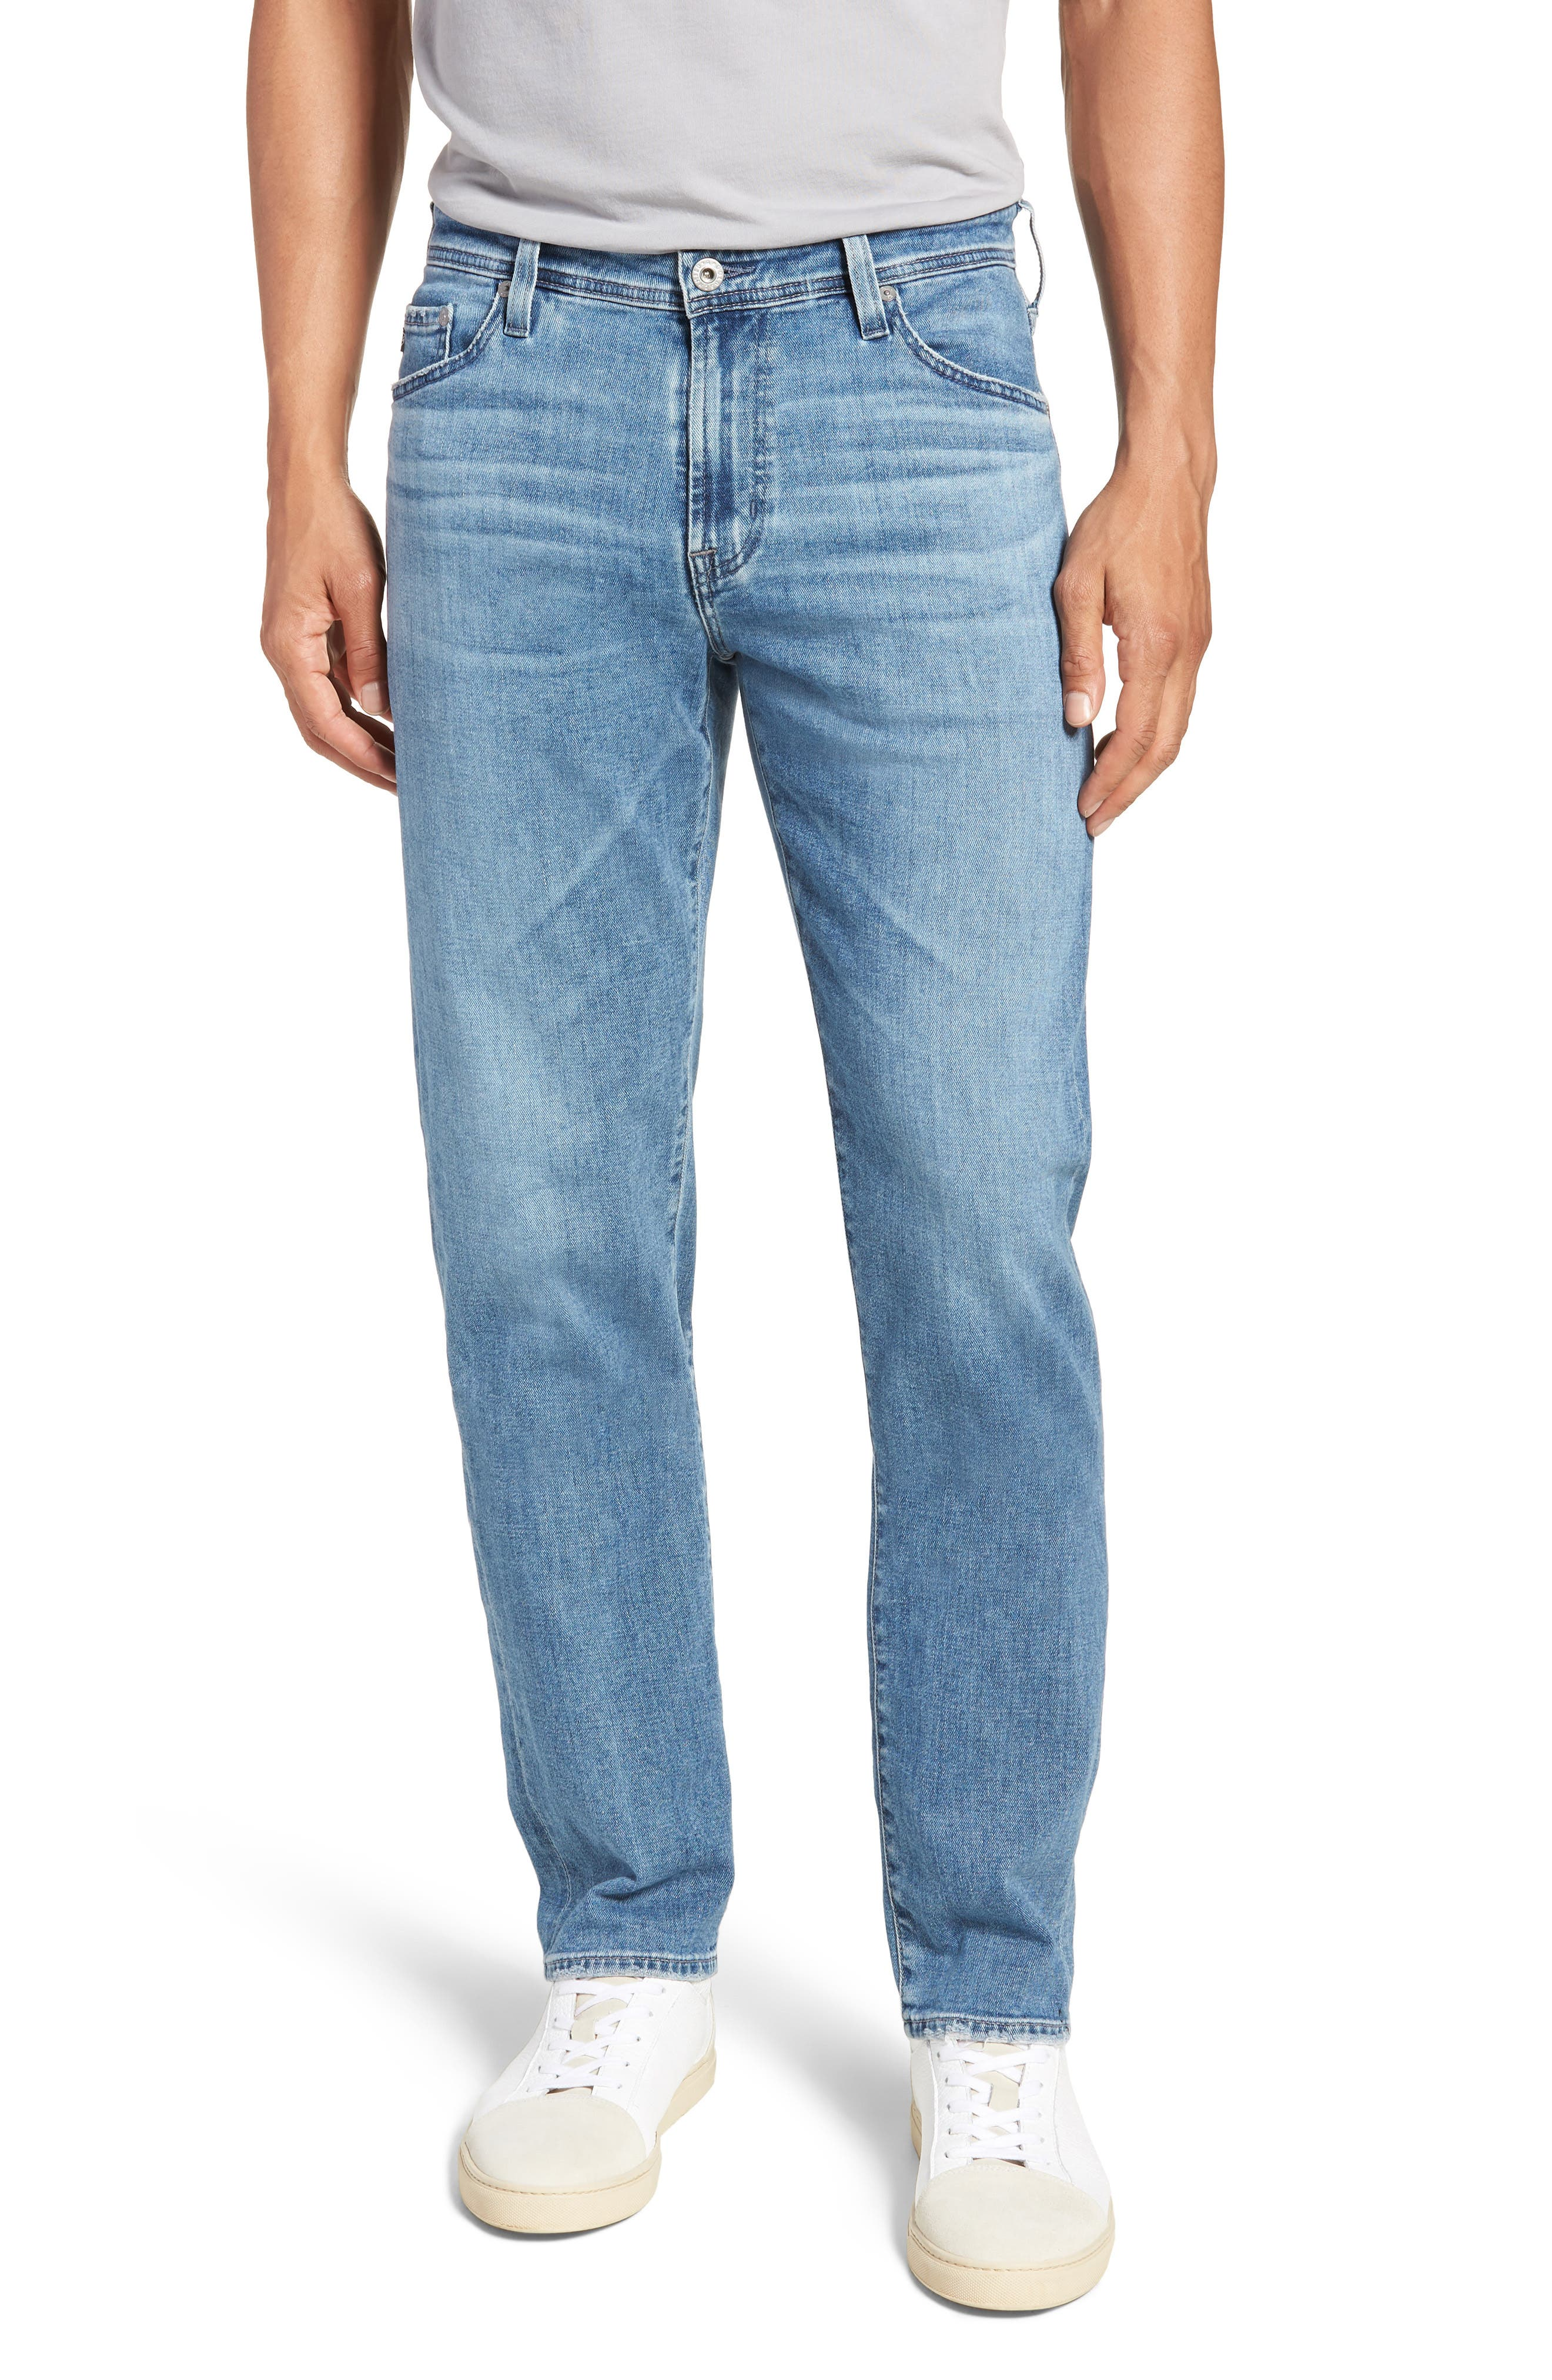 Graduate Slim Straight Leg Jeans,                             Main thumbnail 1, color,                             SANDPIPER